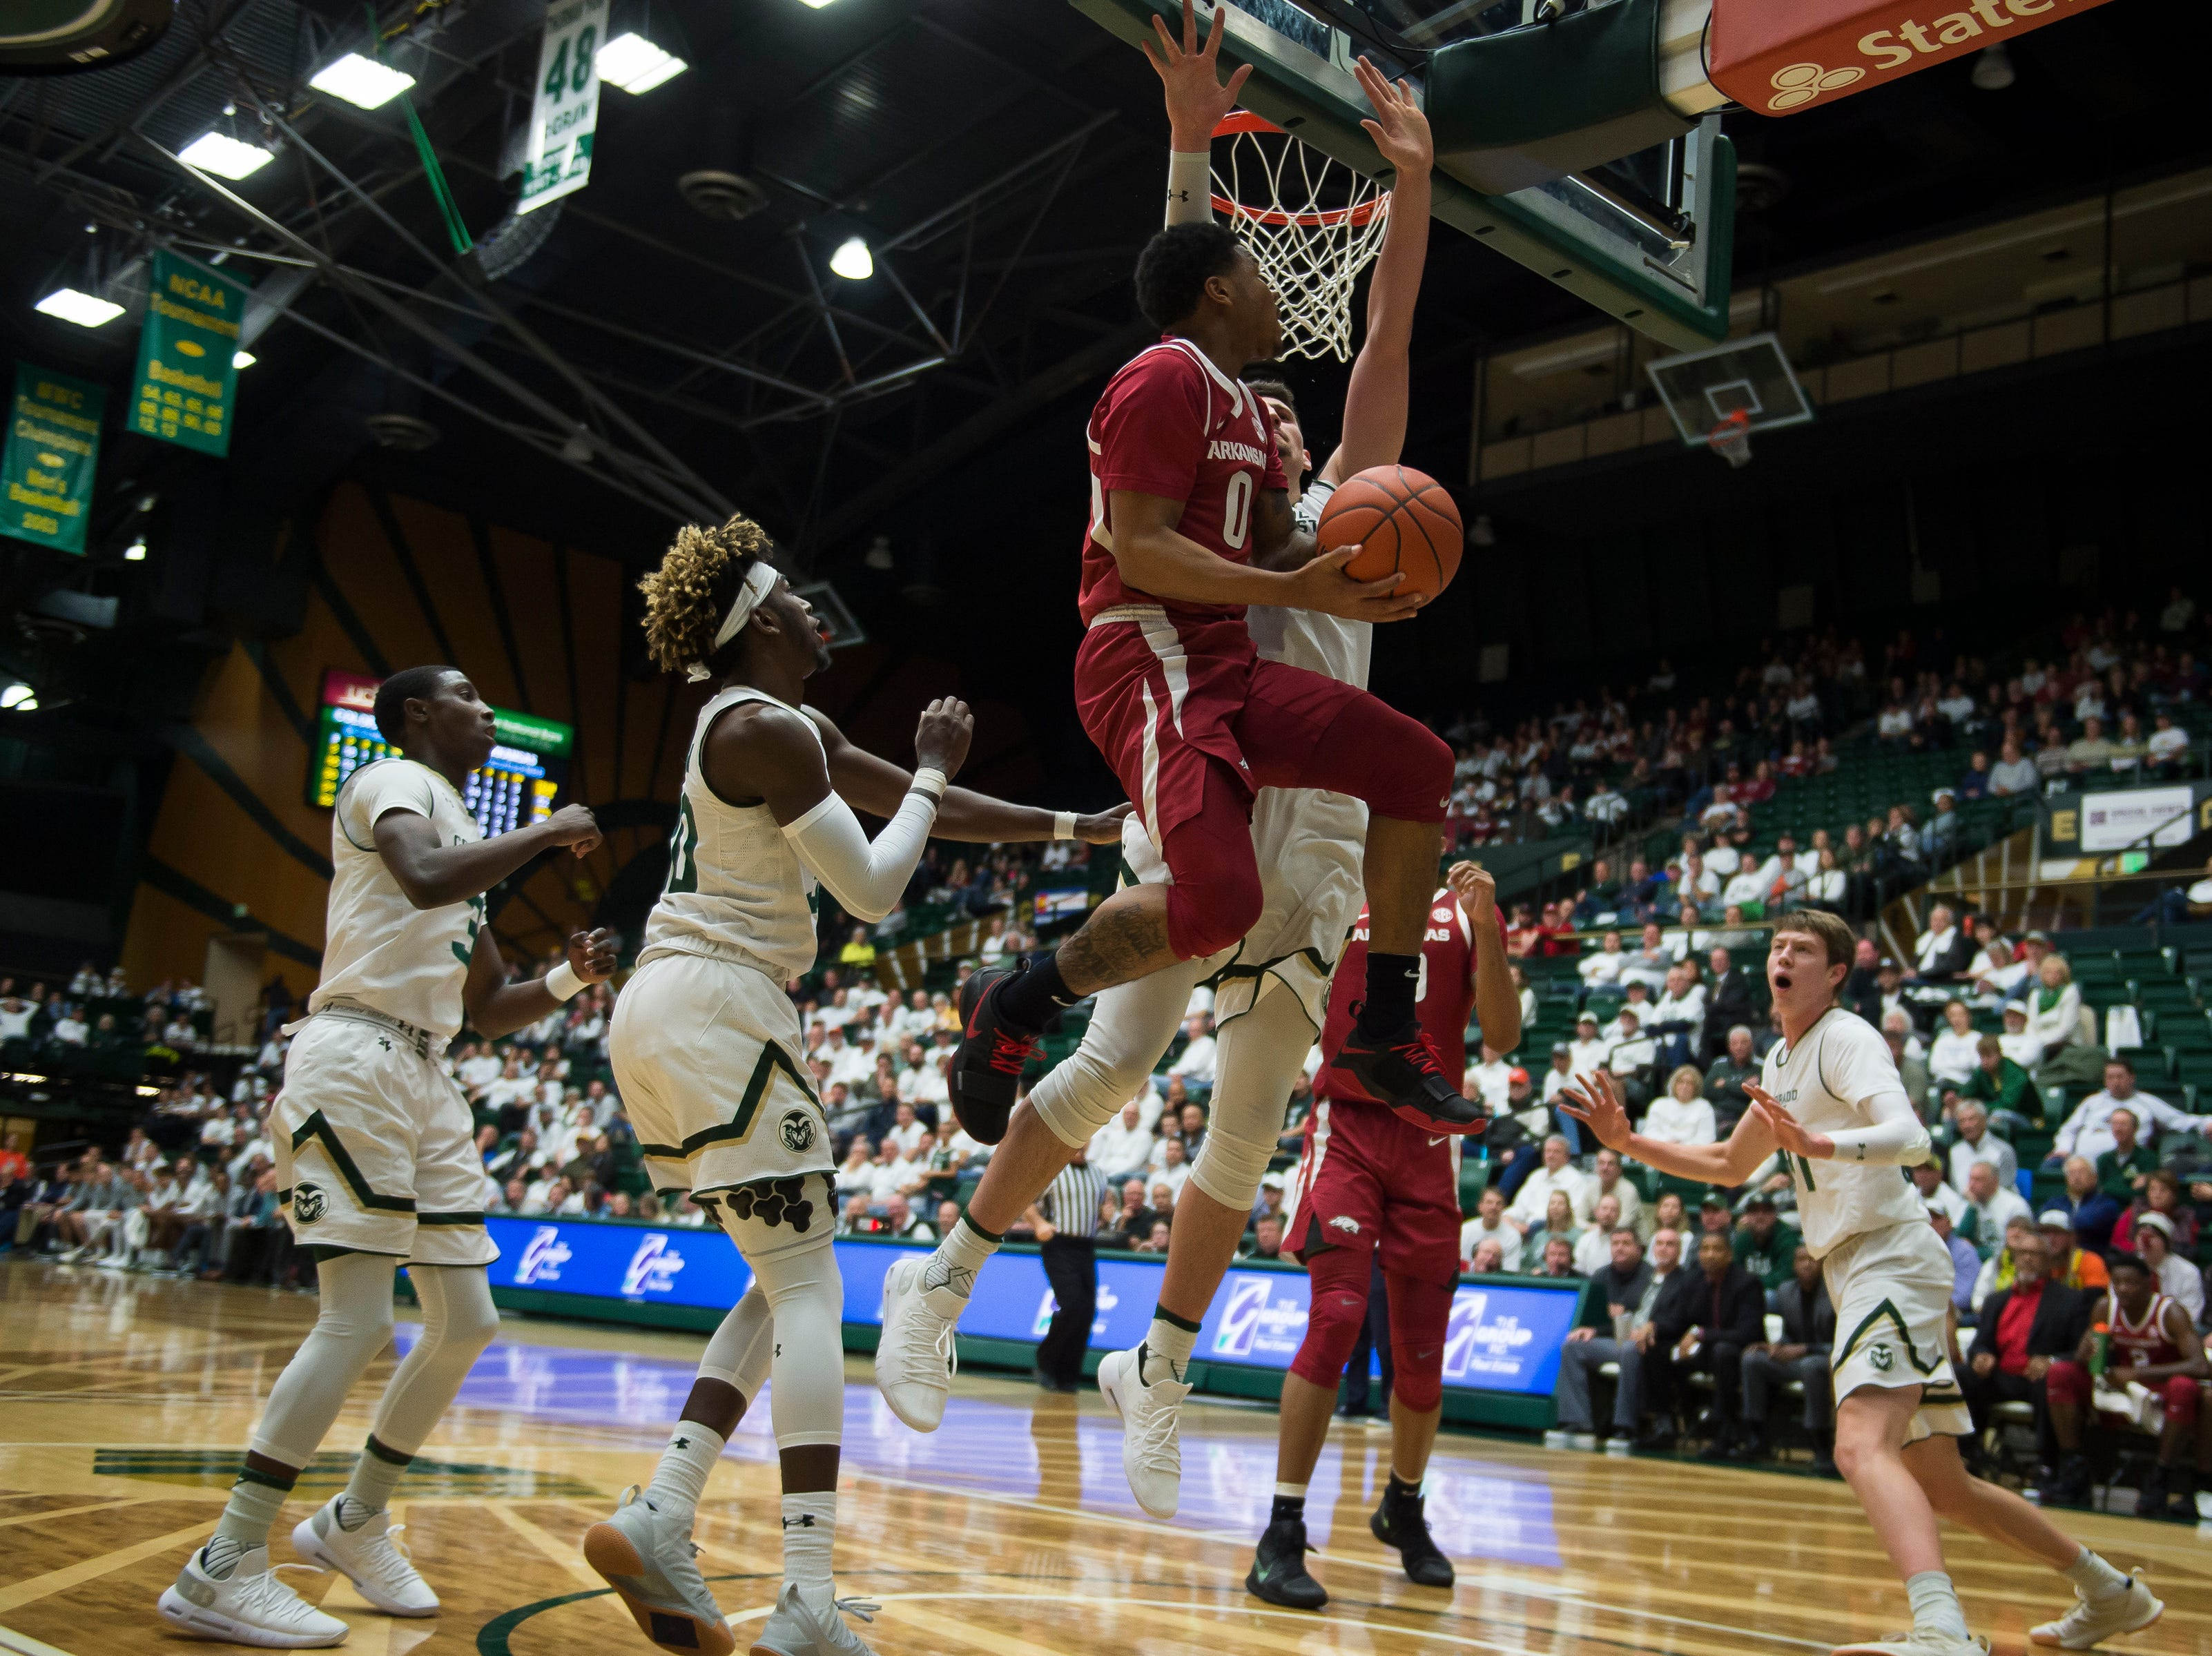 Colorado State University junior center Nico Carvacho (32) blocks out Arkansas freshman guard Desi Sills (0) on Wednesday, Dec. 5, 2018, Moby Arena in Fort Collins, Colo.